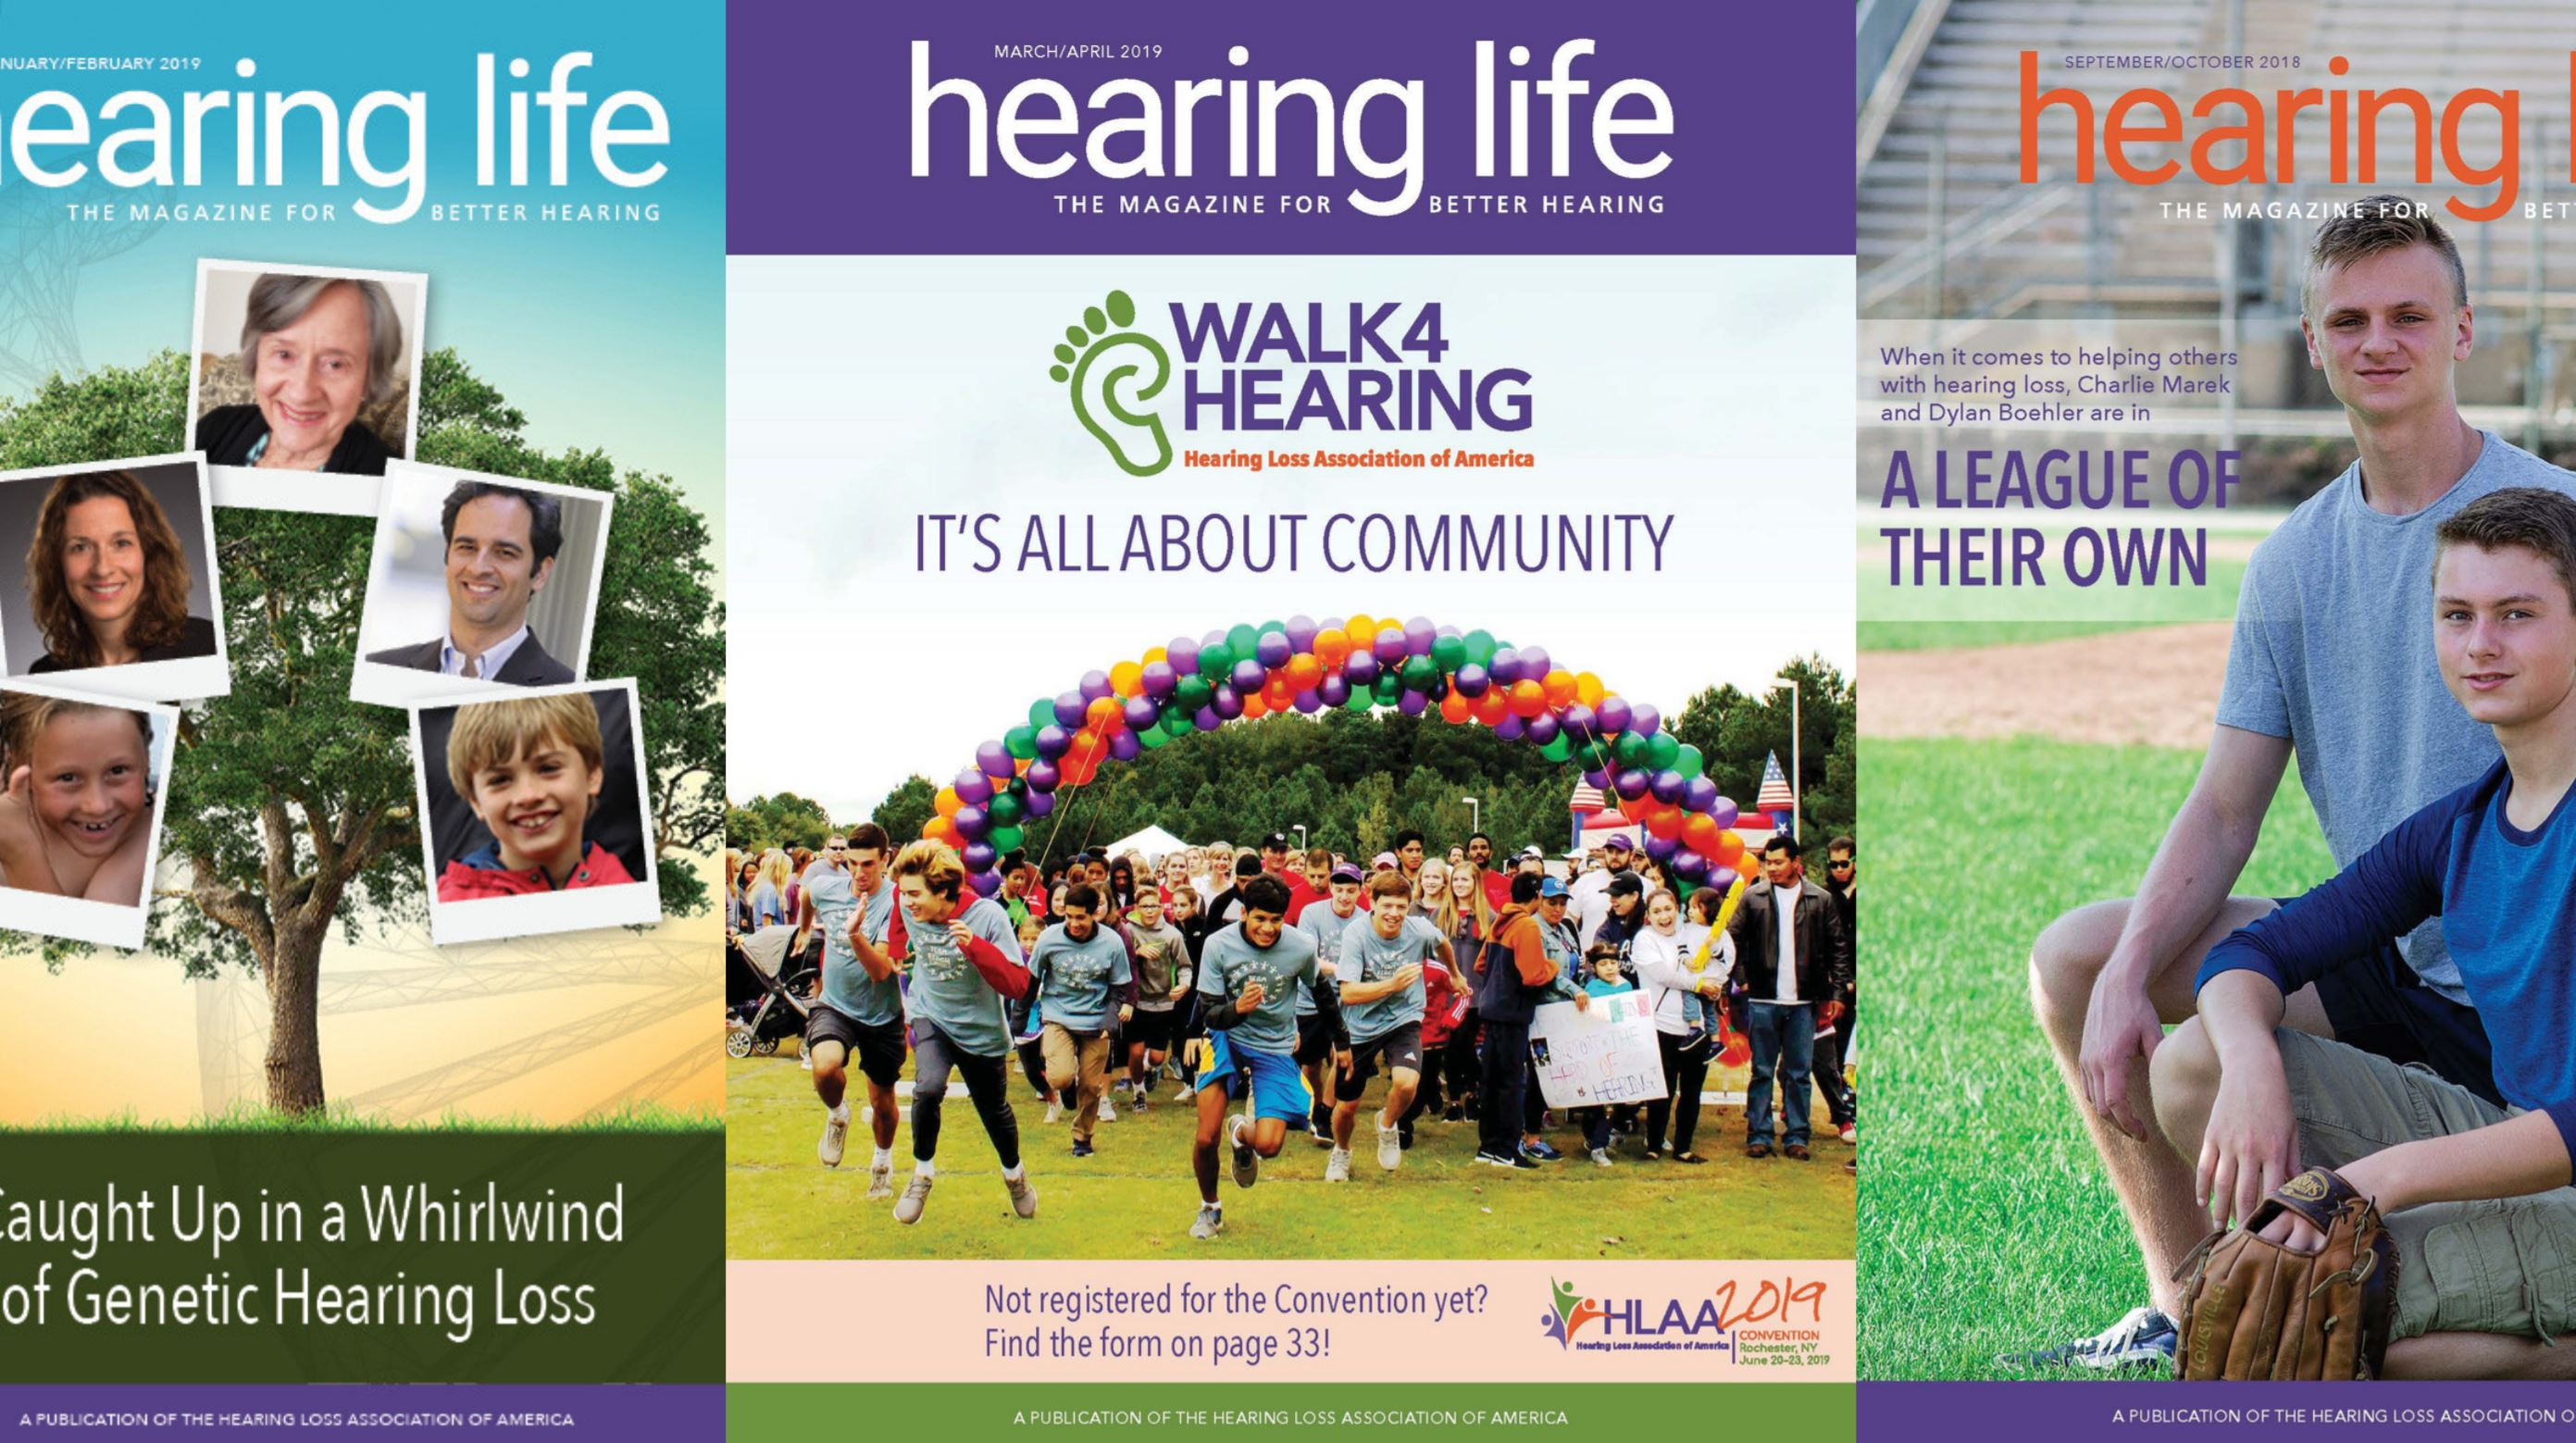 covers of Hearing Life Magazine, the magazine for better hearing